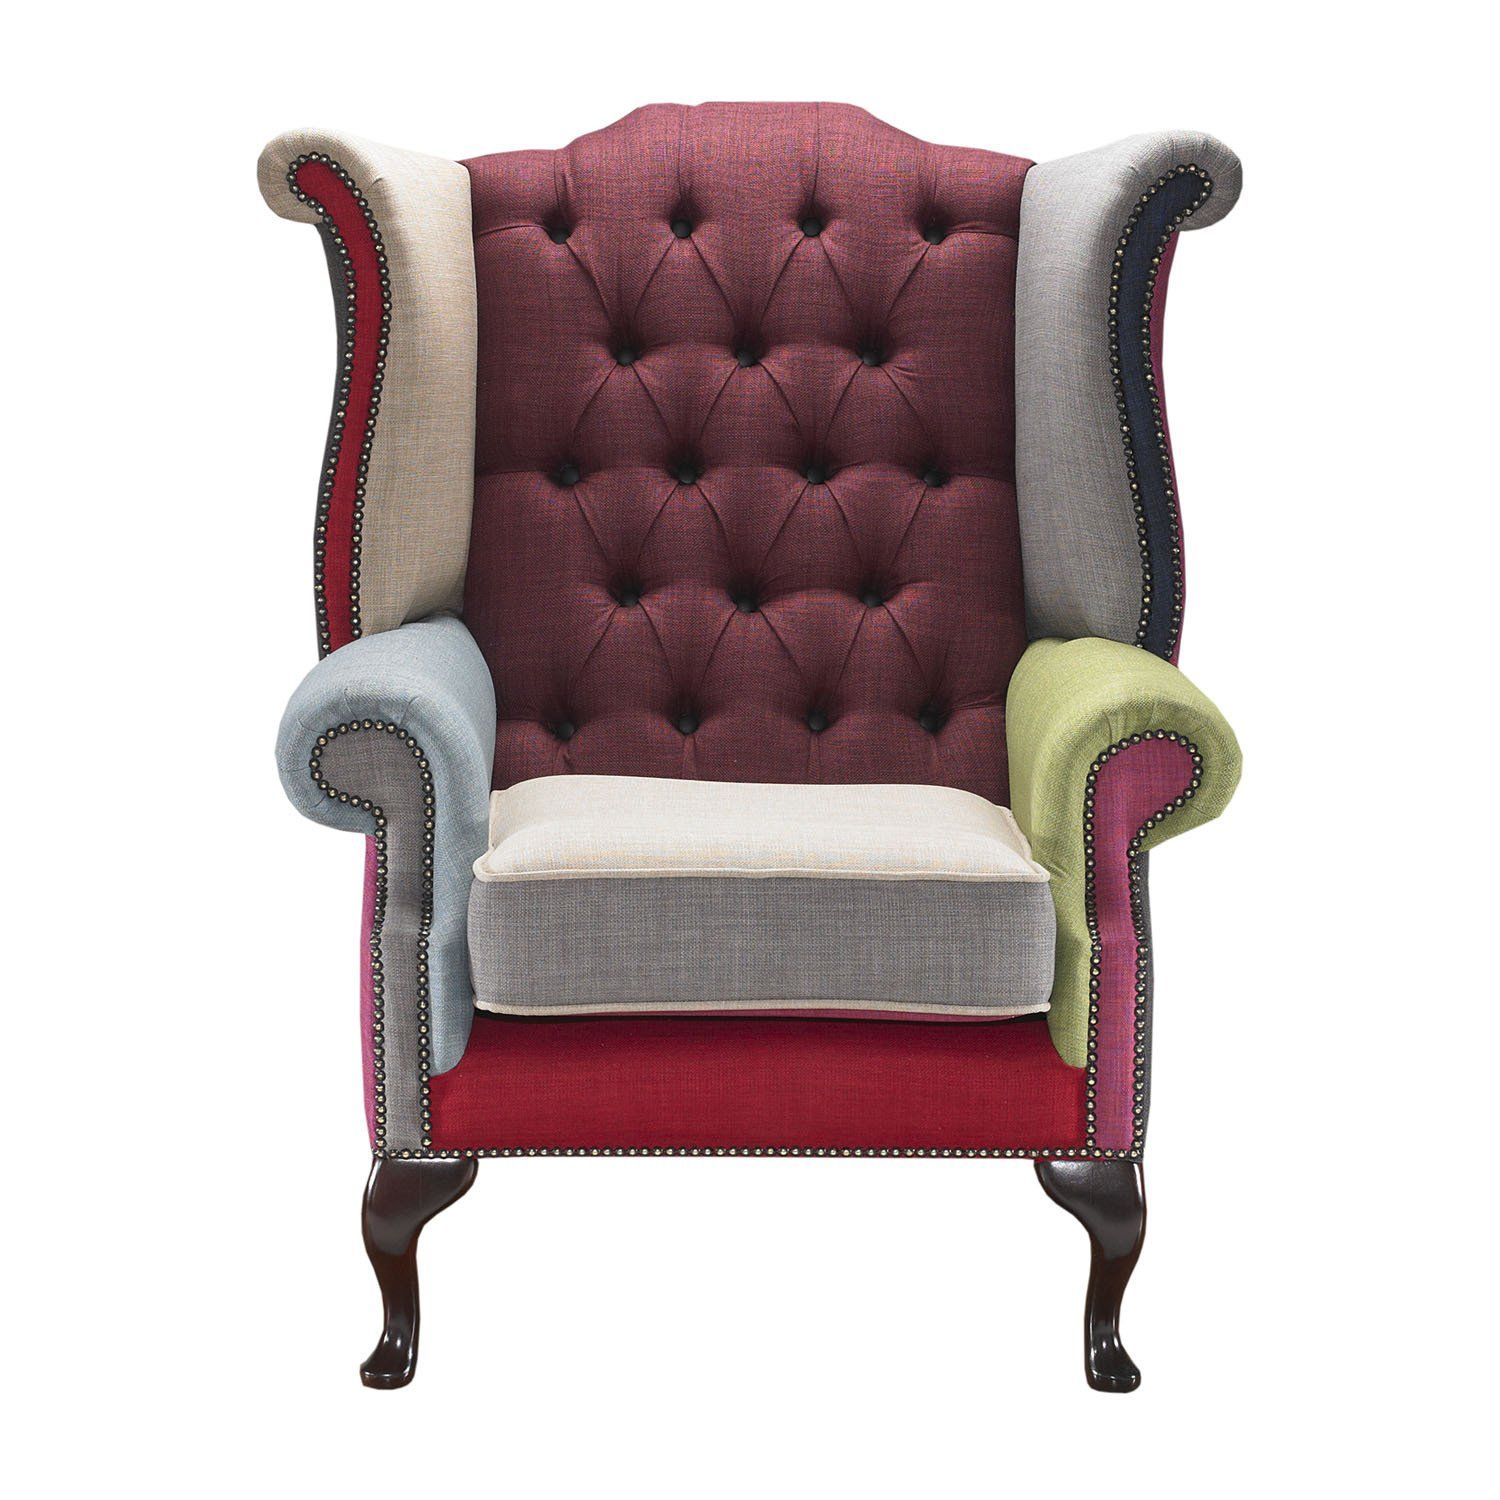 Yoshida Chesterfield Fabric Queen Anne Armchair Only 44999 On